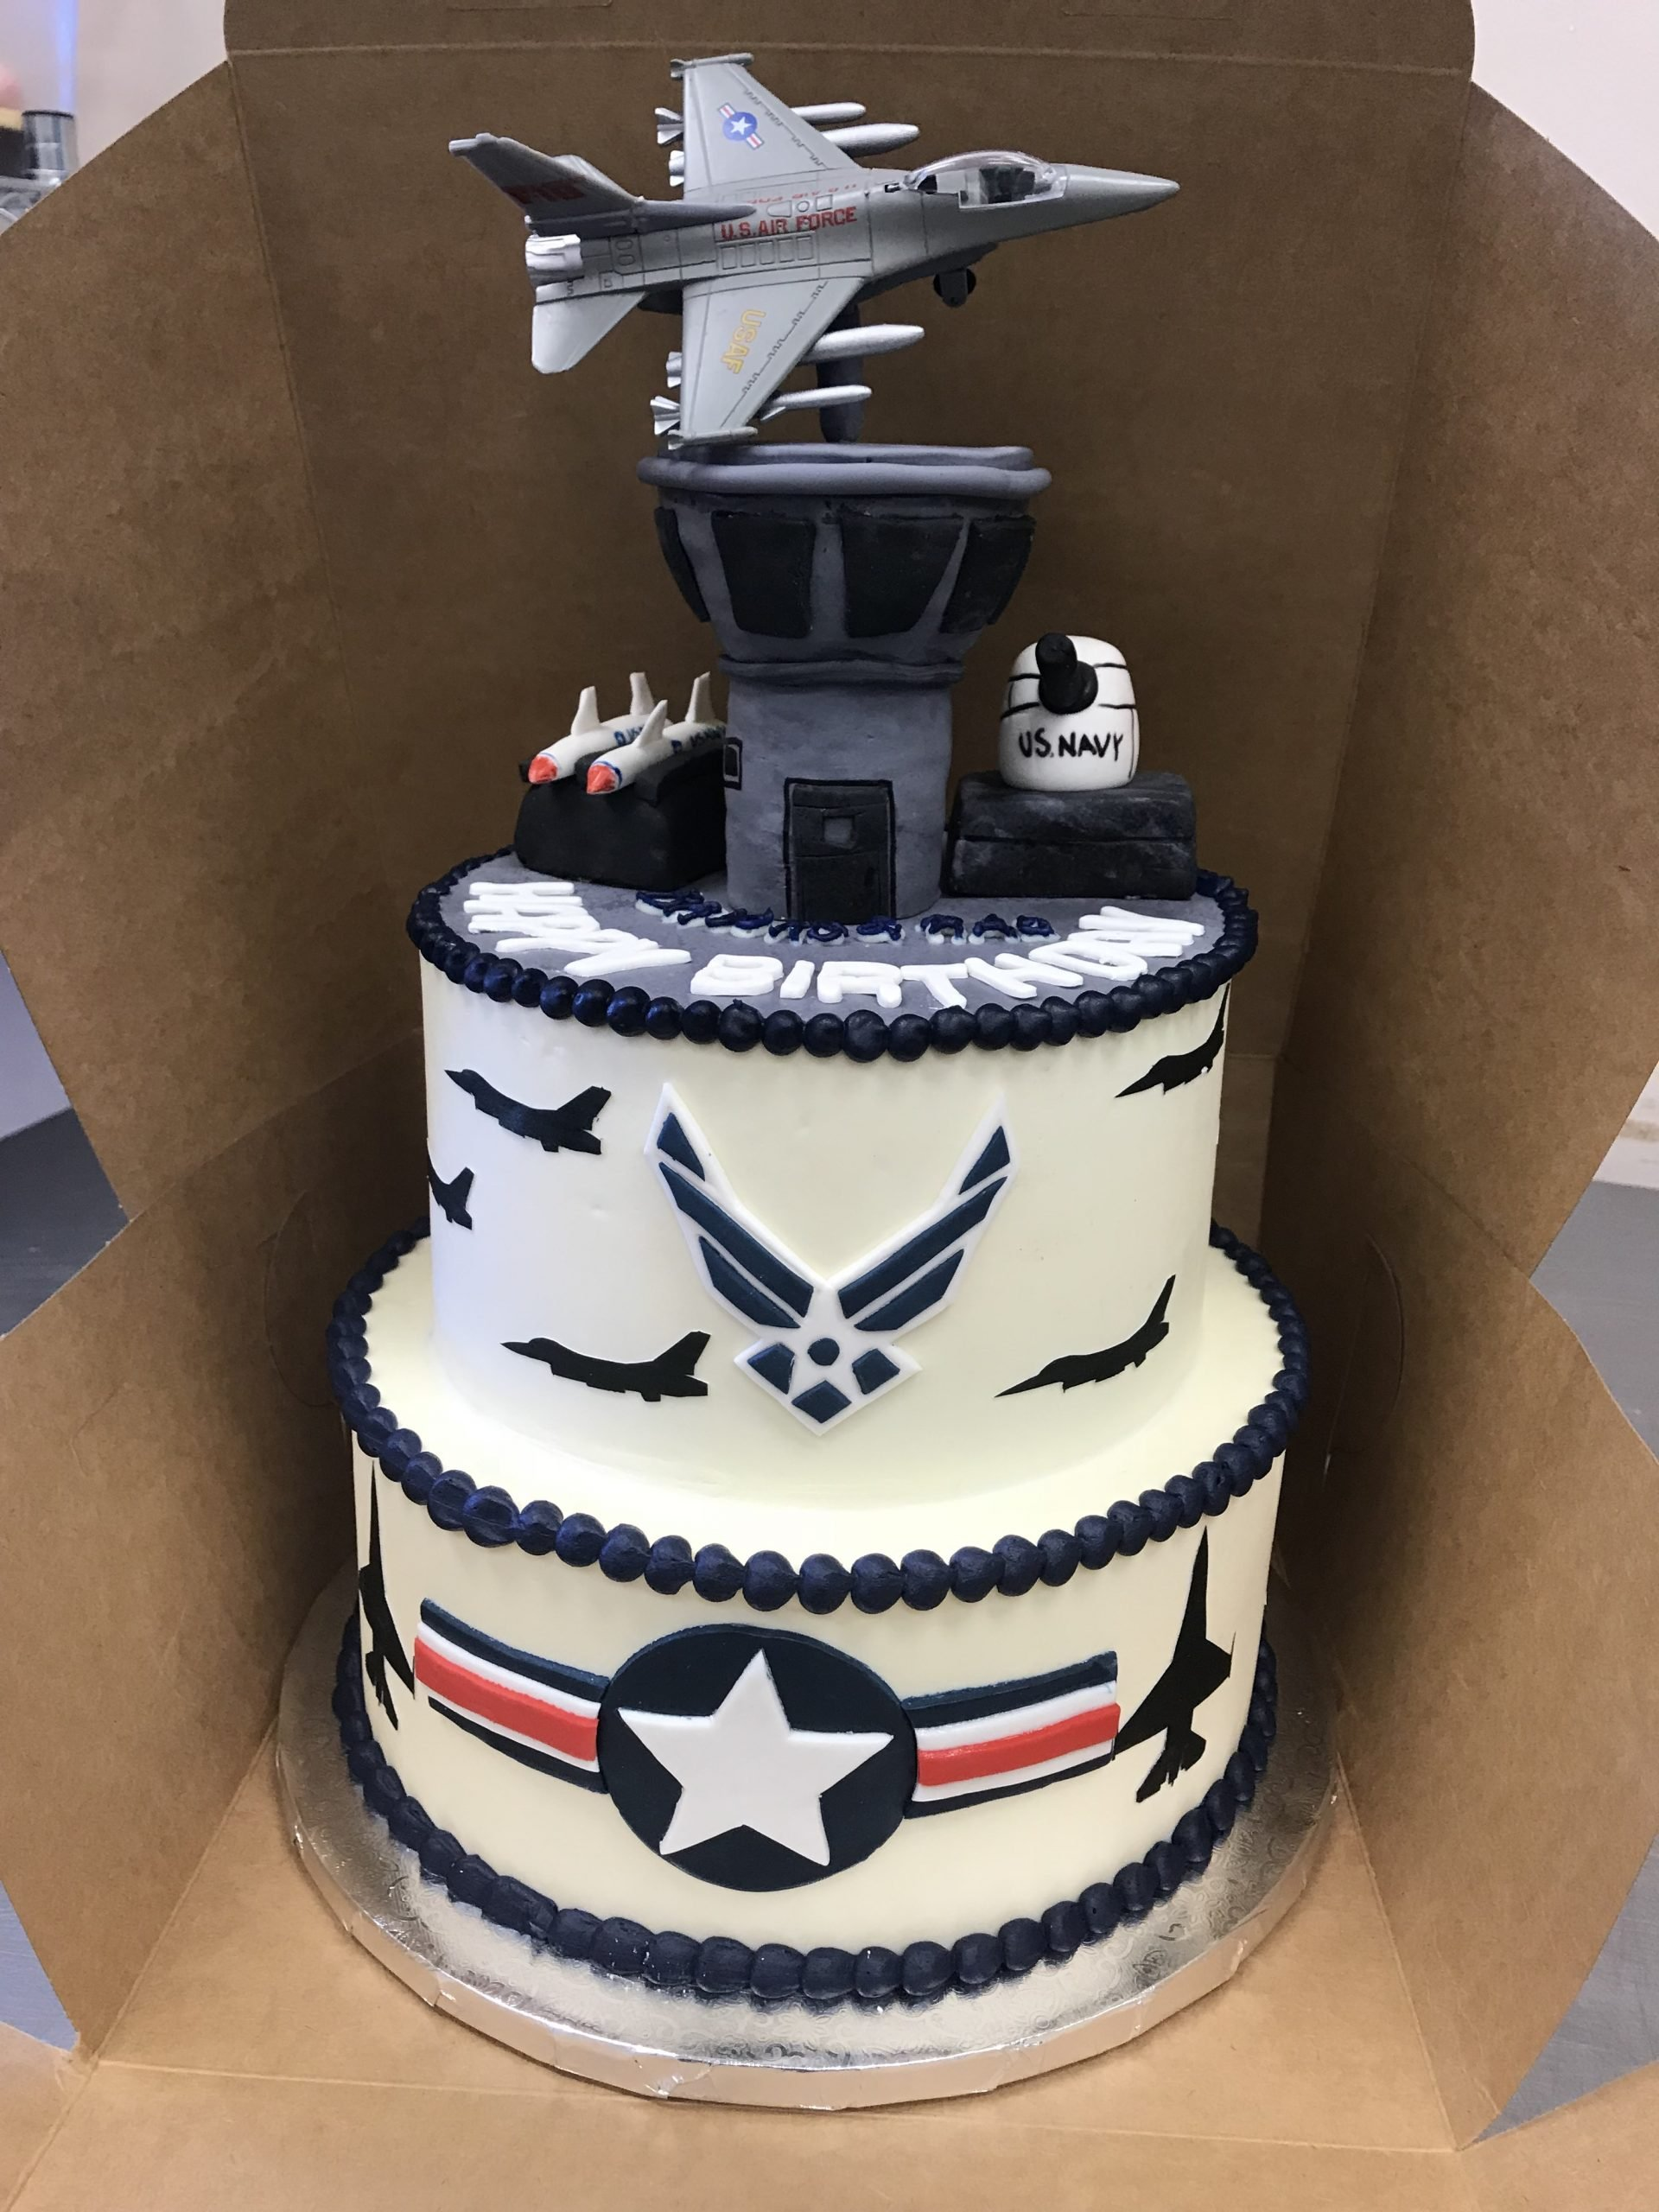 Cake Art. Air Force and Army!